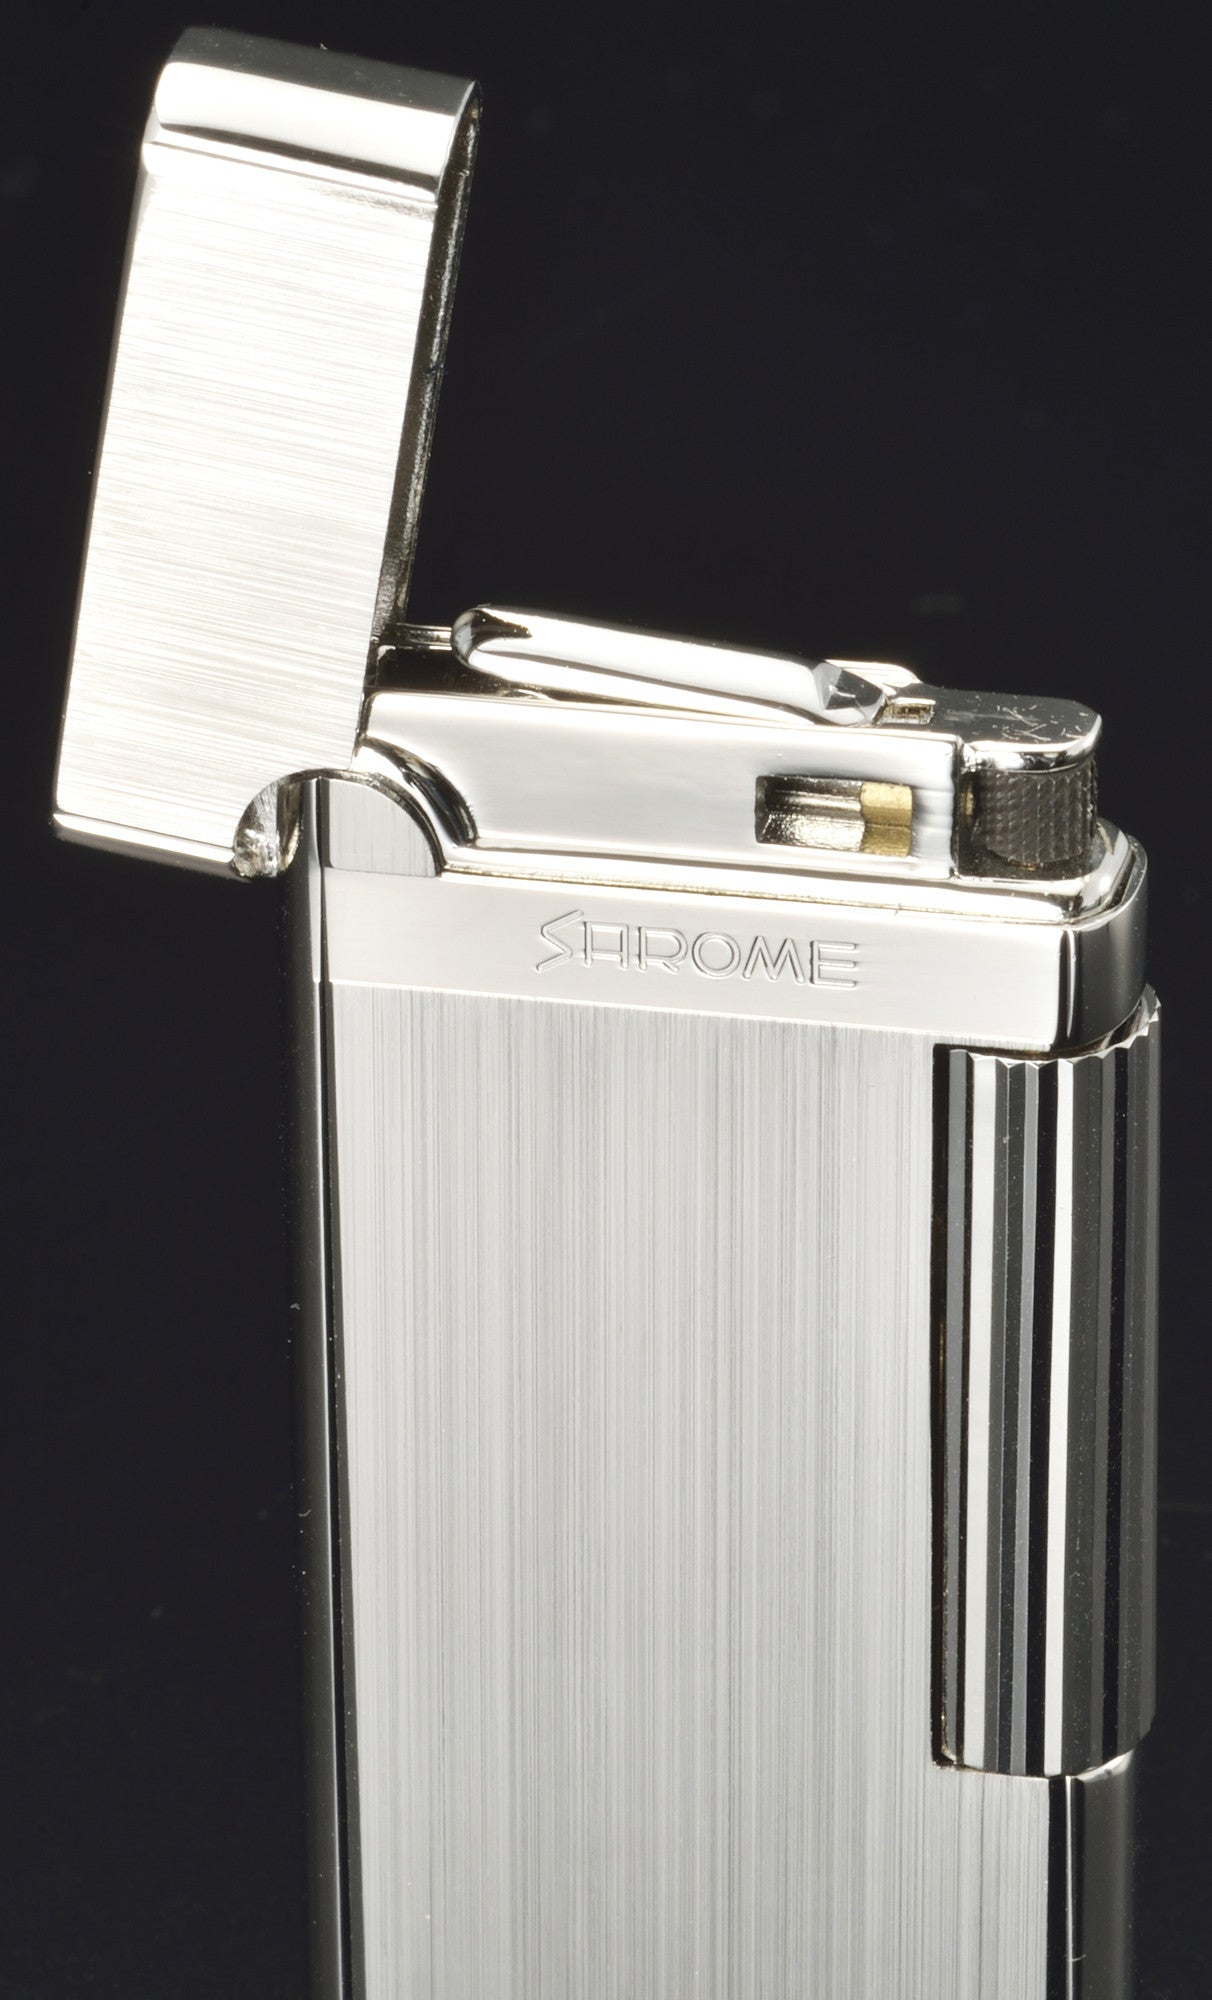 Sarome Flint Cigarette Lighter SD43-02 Light gray hairline